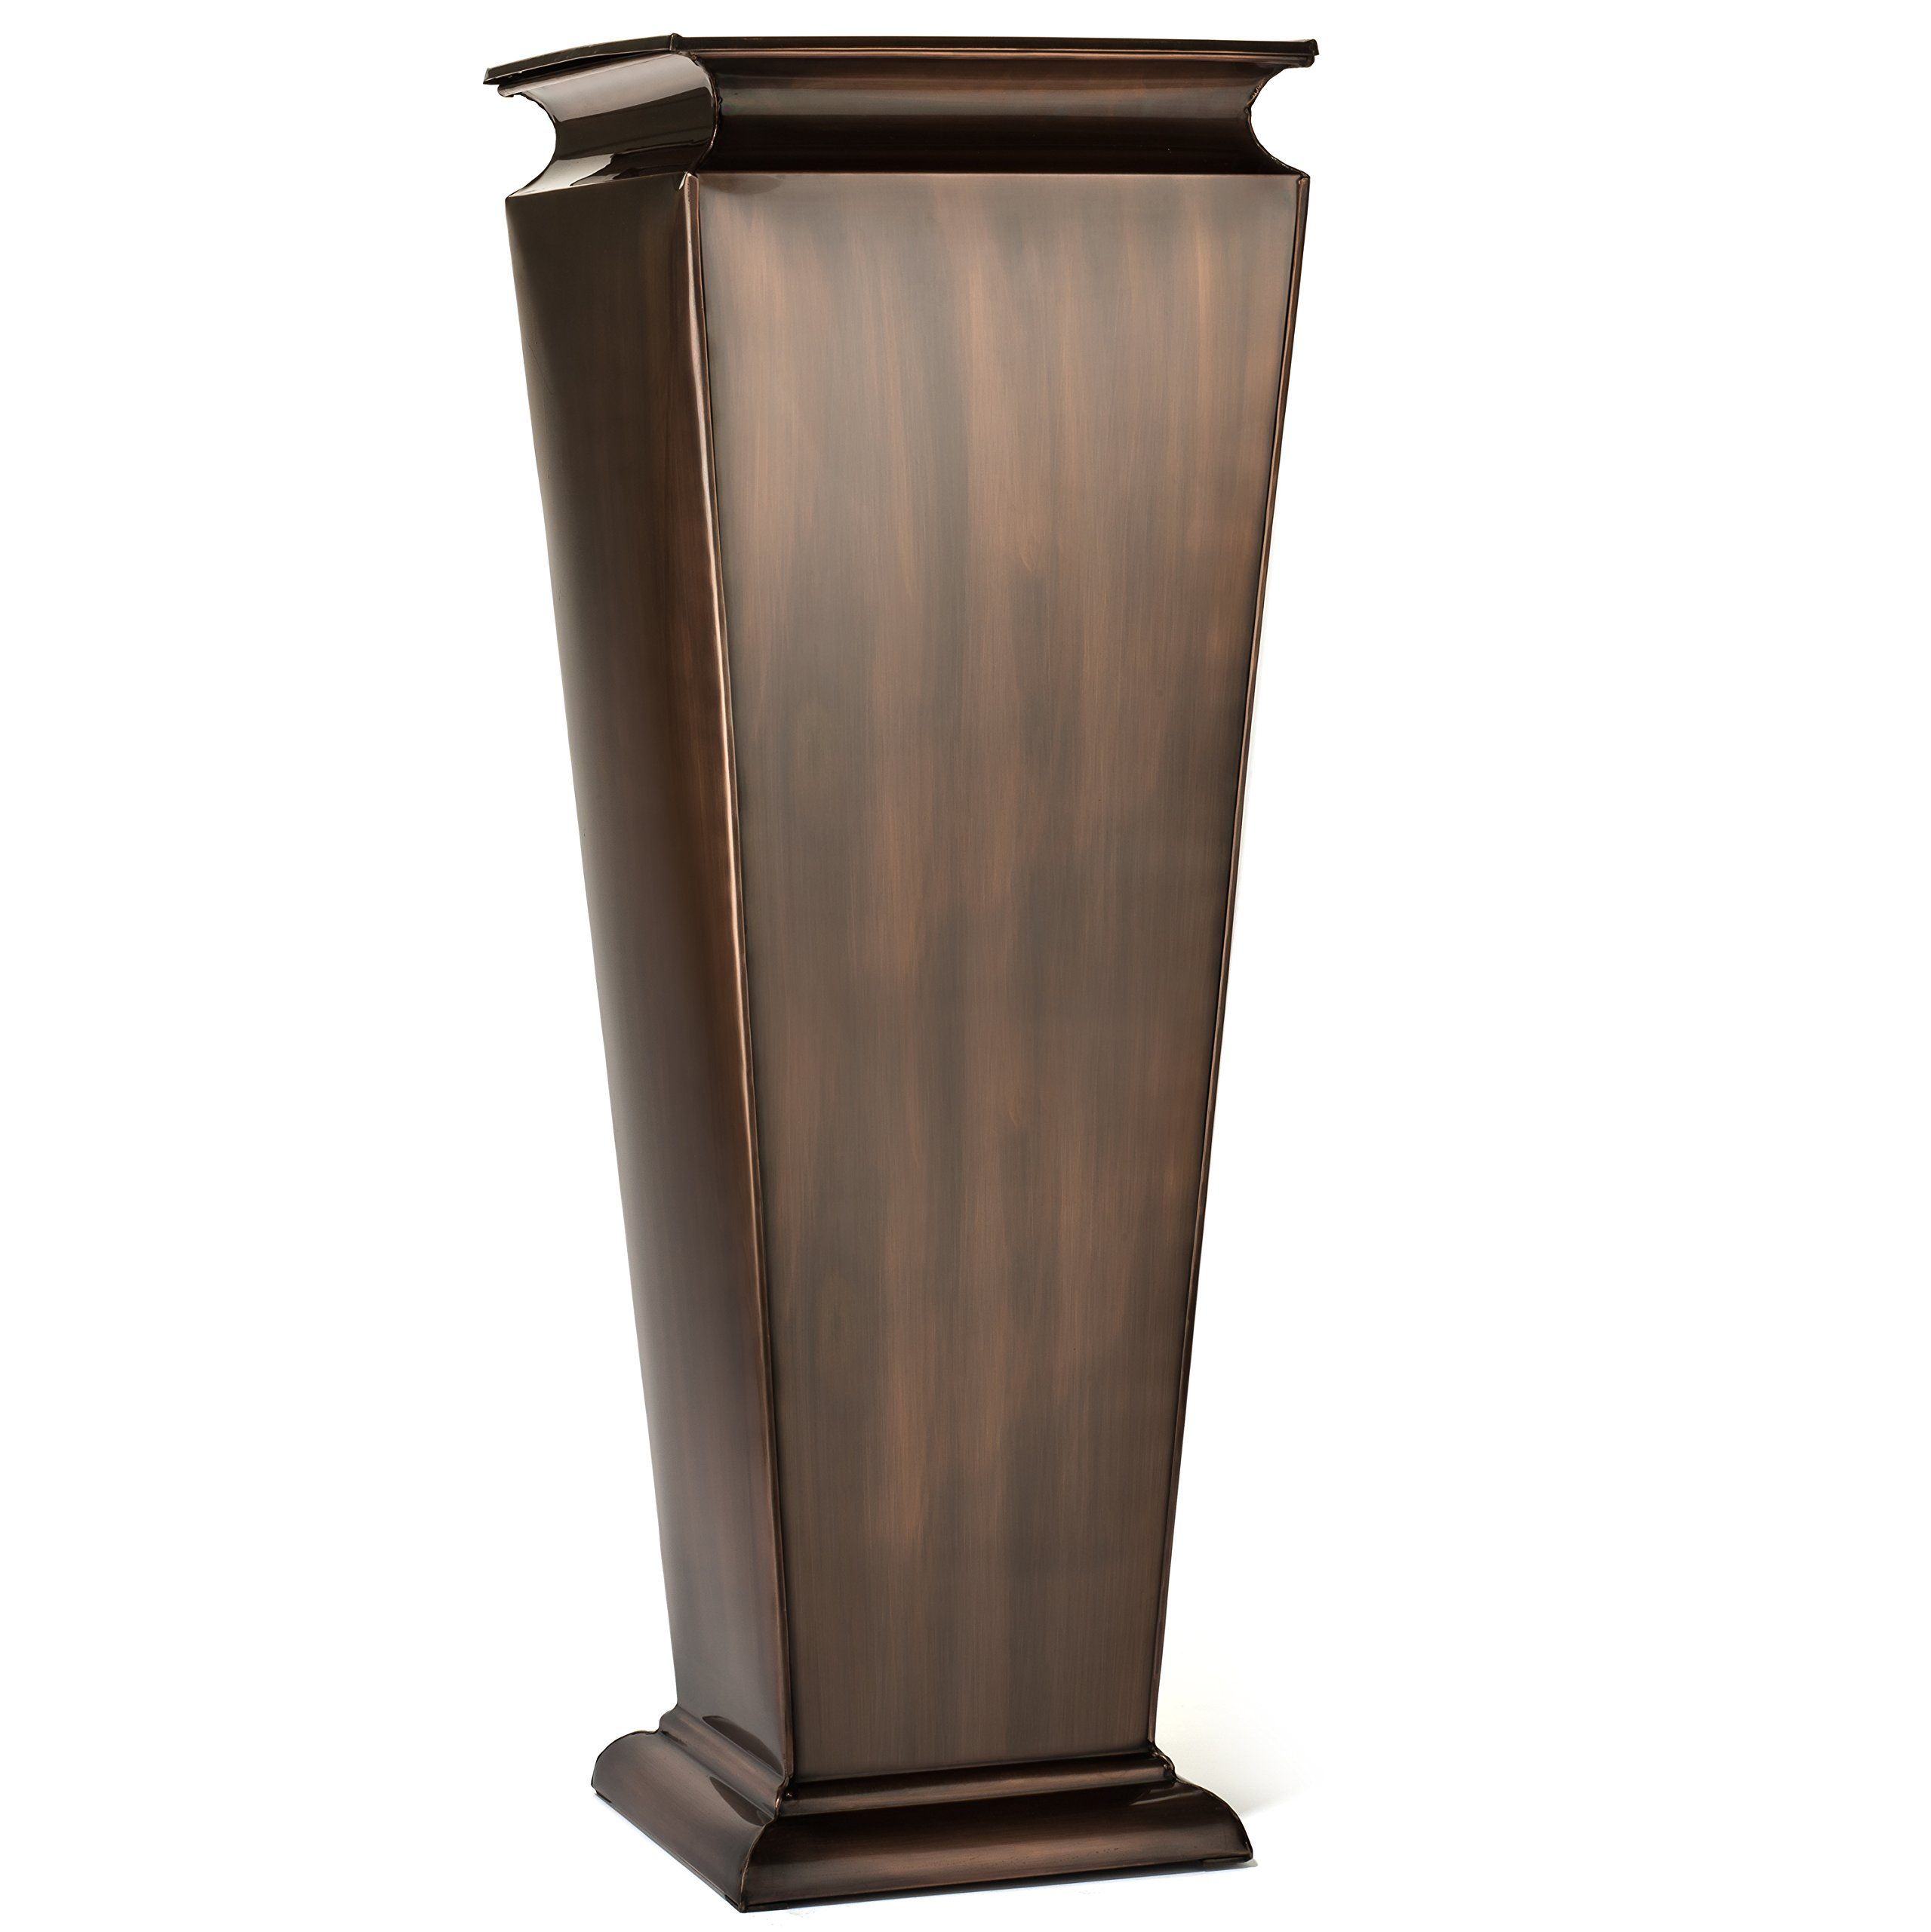 H Potter Tall Outdoor Planter Copper Large Flower Pots Indoor for Patio Balcony Garden Deck Front Porch Entryway by H Potter